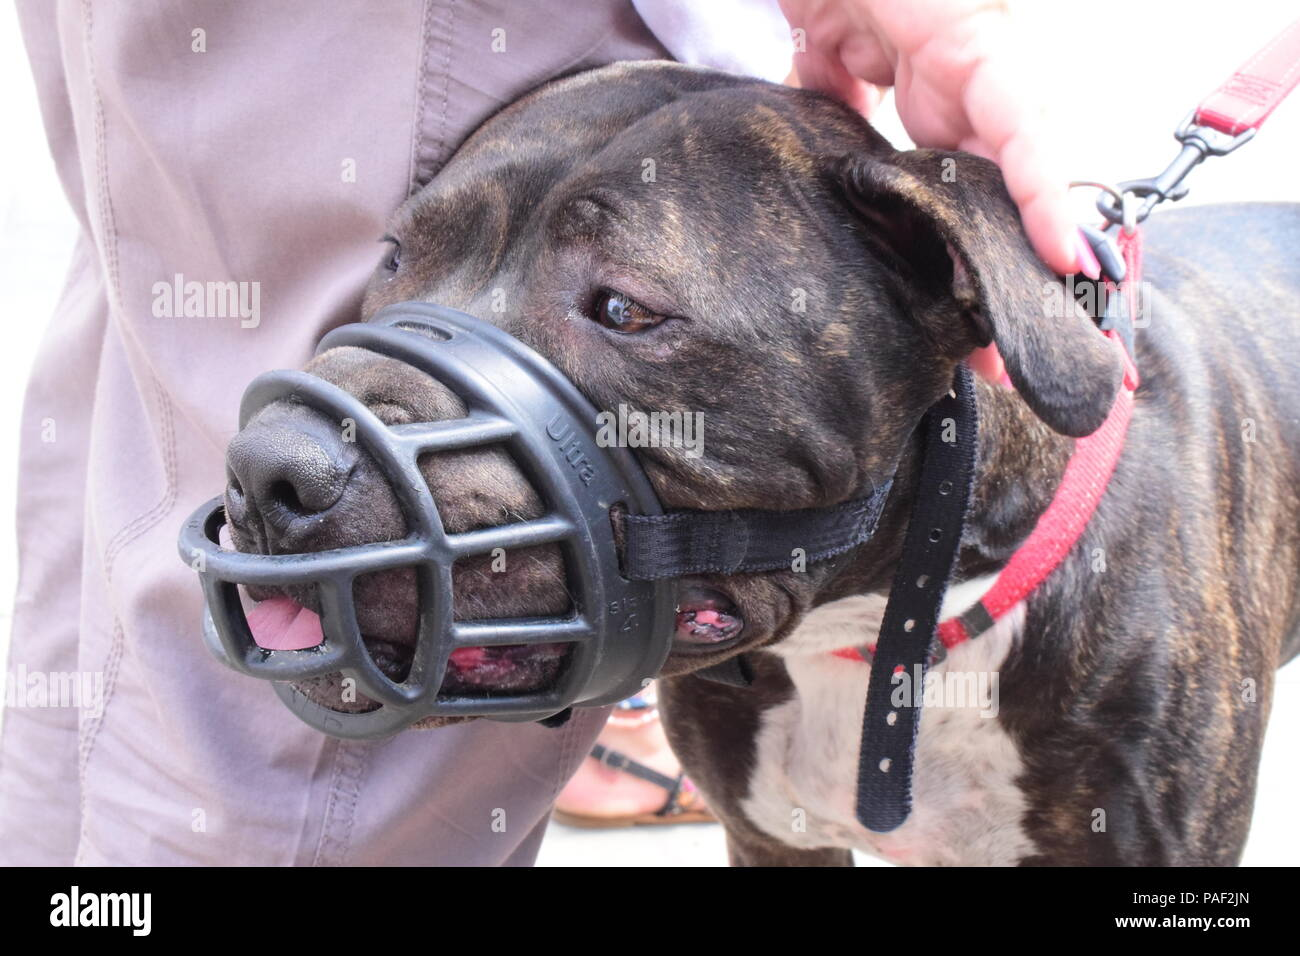 Anti BSL Protest In Westminster, London - Stock Image